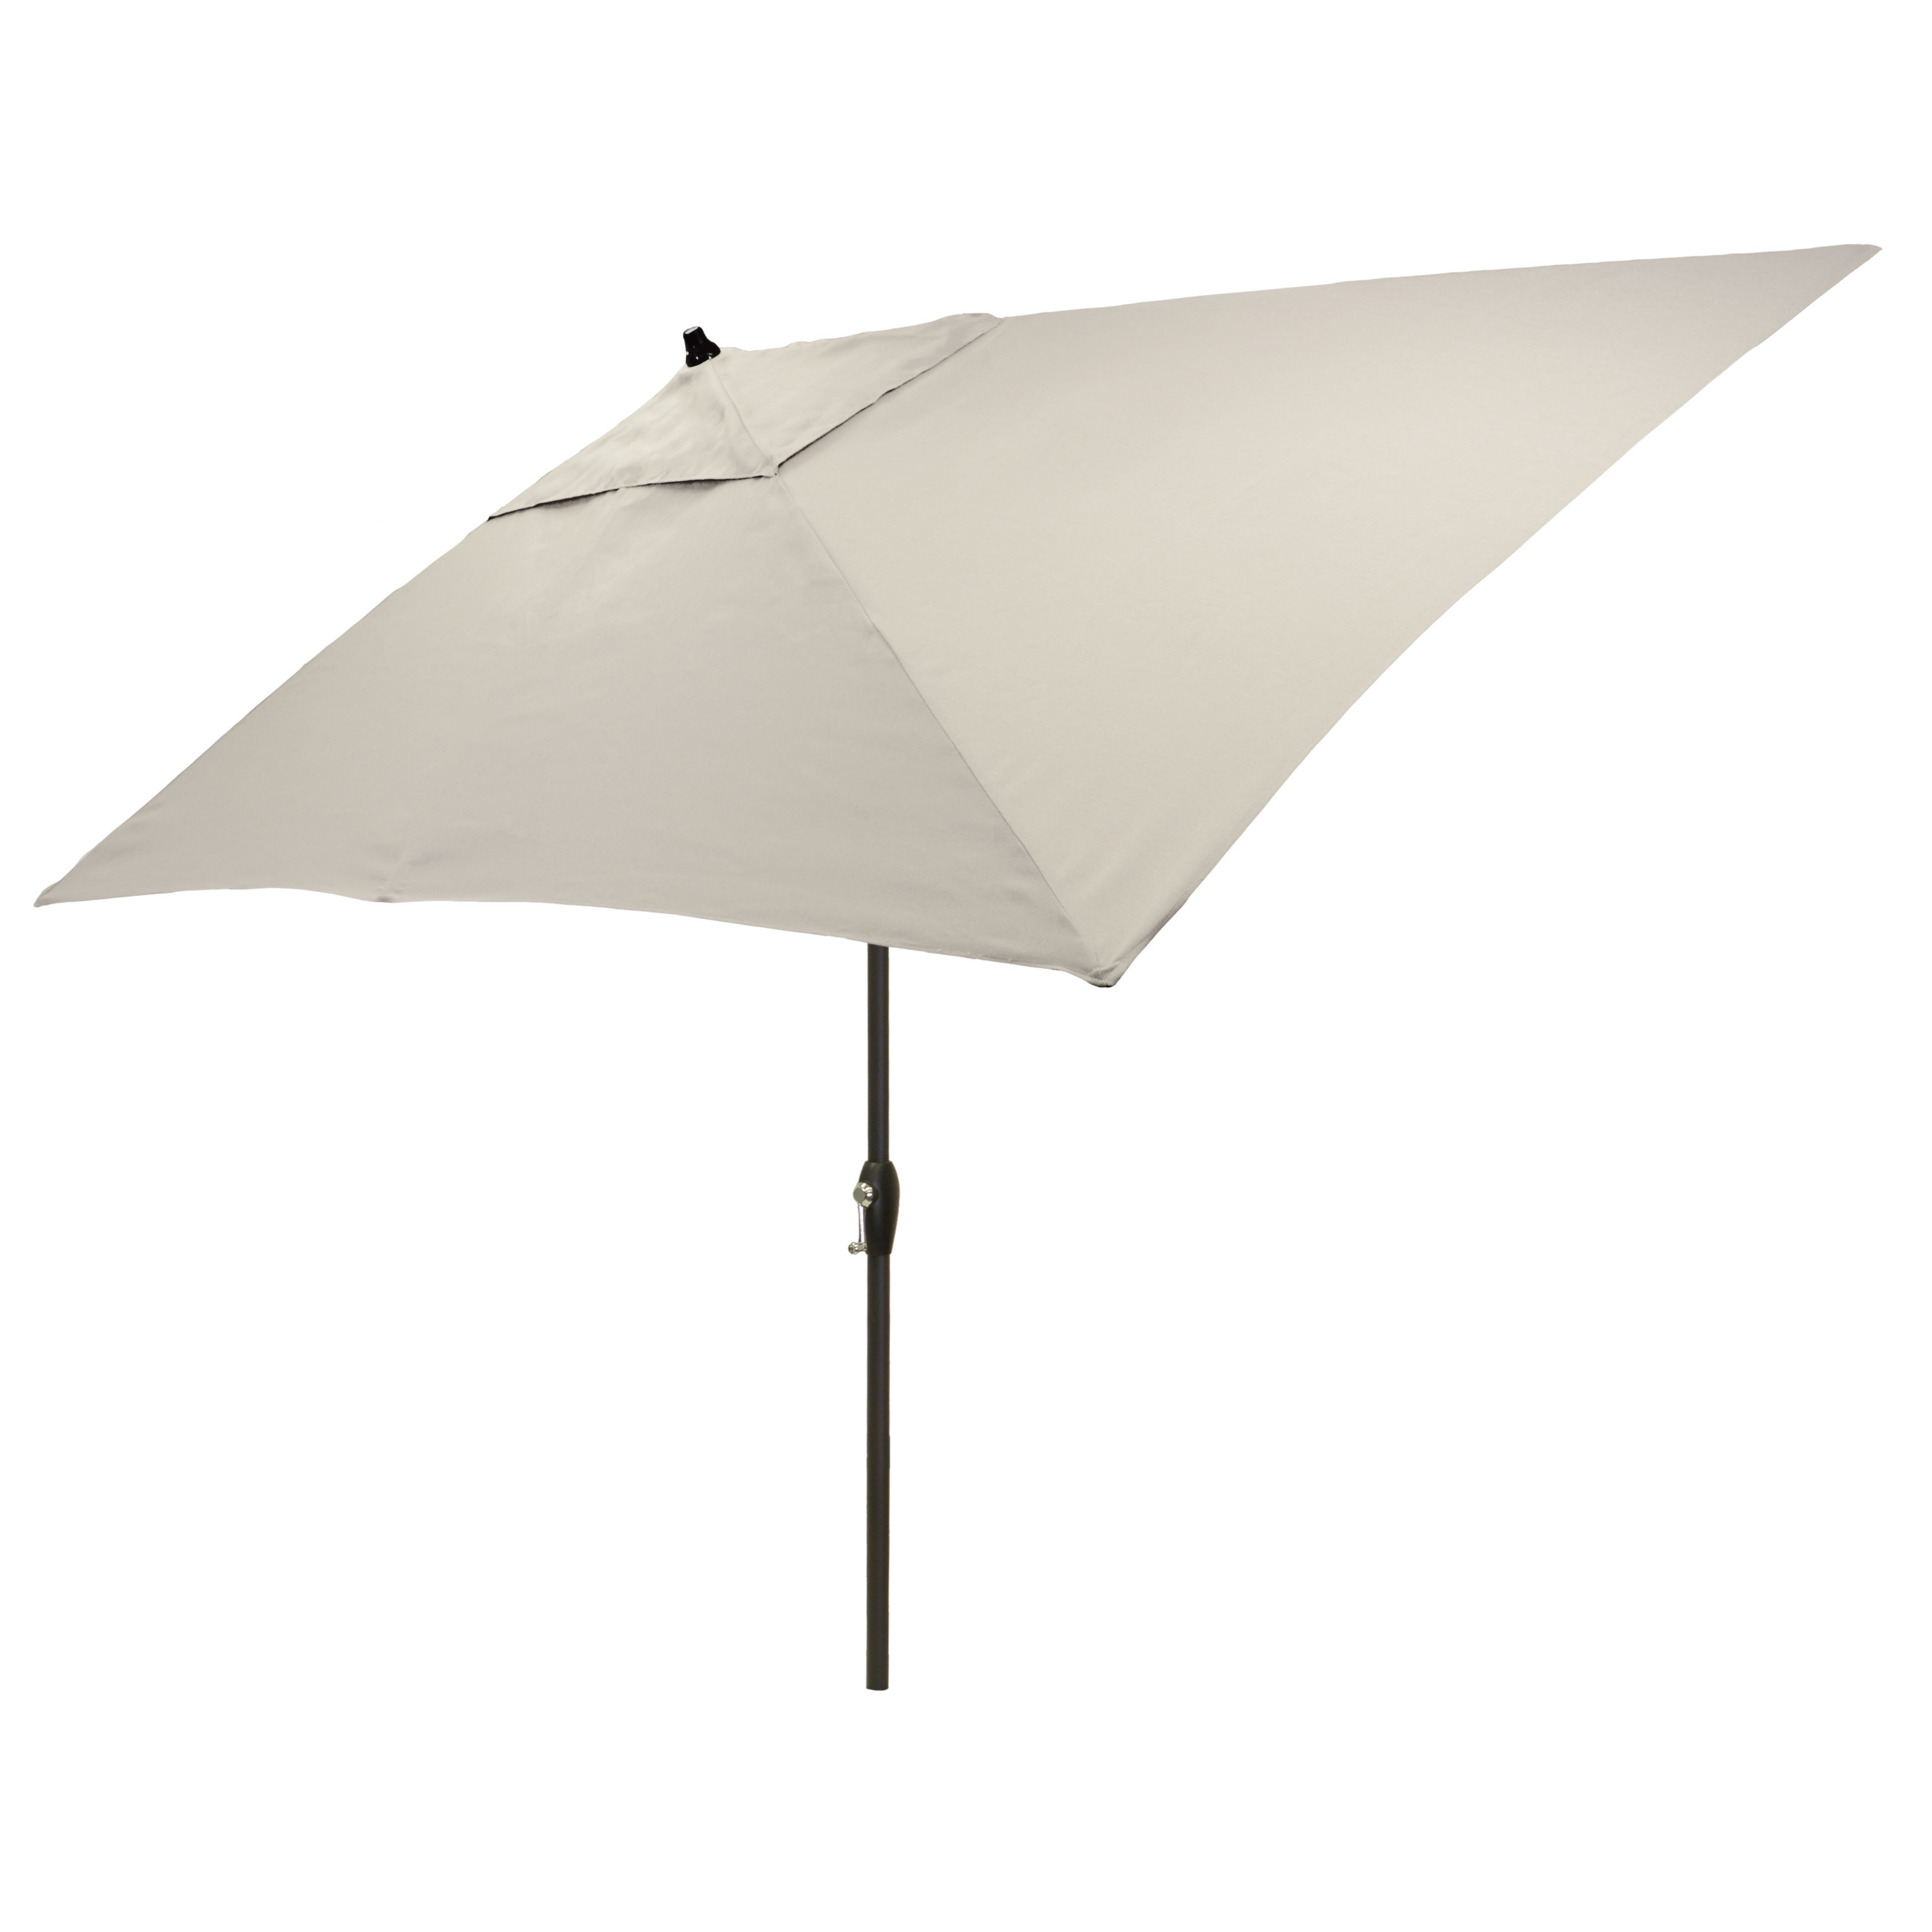 2019 Delaplaine Market Umbrellas Pertaining To Hulme Solid 6.5' X 10' Rectangular Market Umbrella (Gallery 19 of 20)